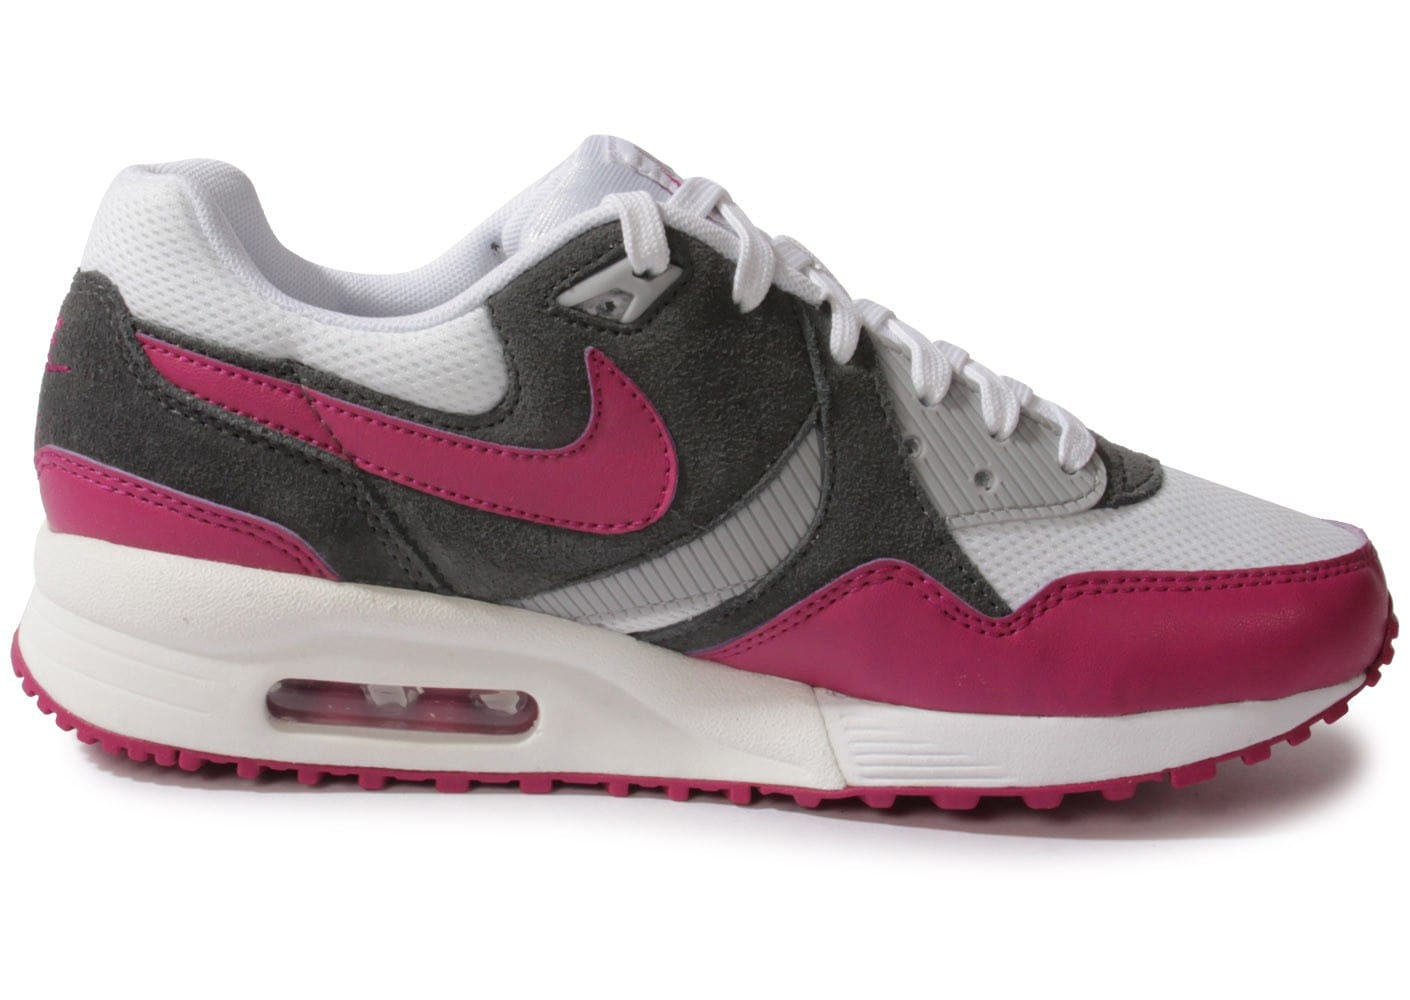 nike air max light blanche chaussures chaussures chausport. Black Bedroom Furniture Sets. Home Design Ideas